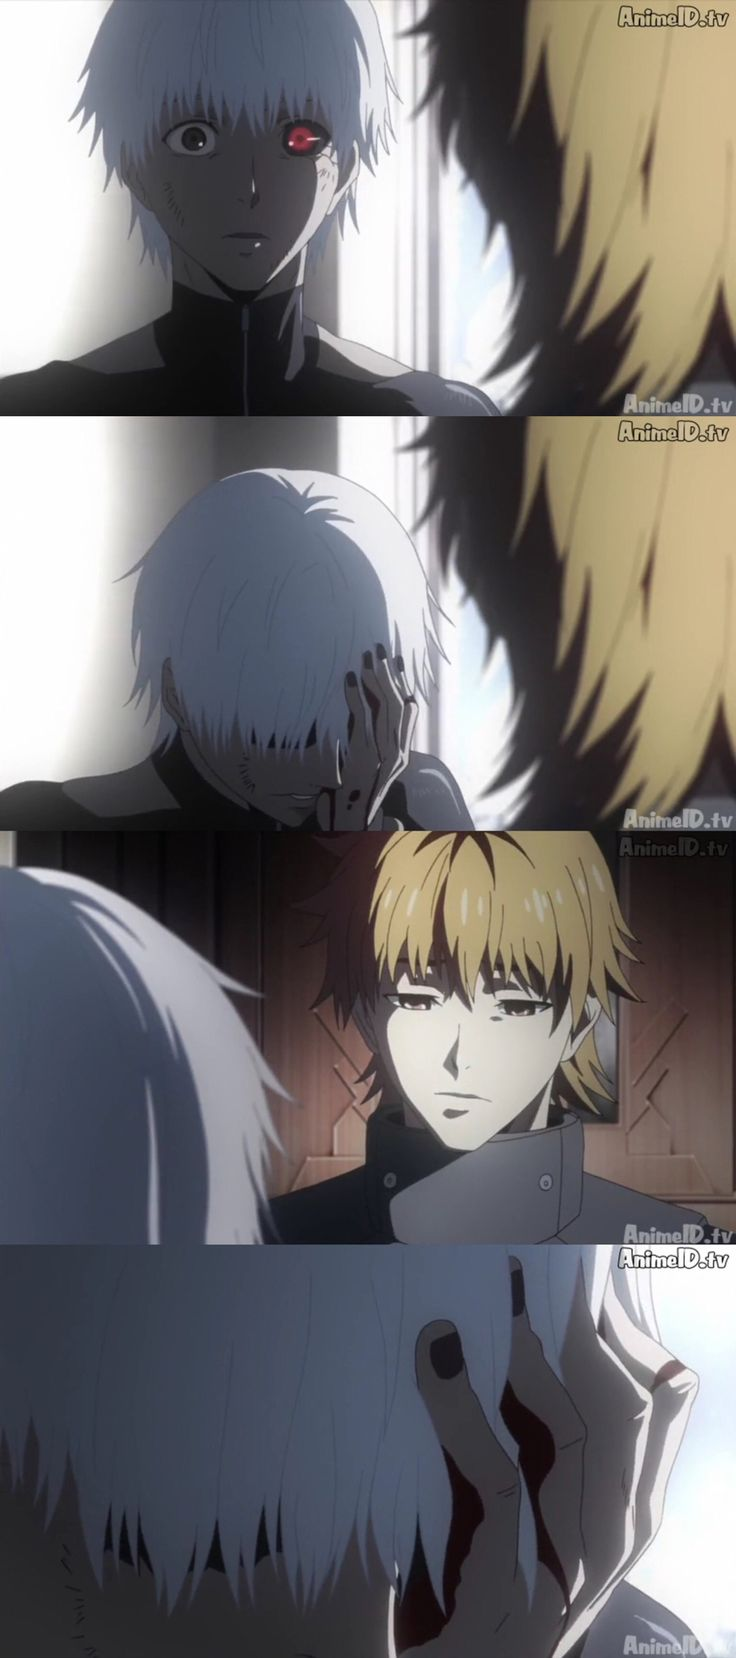 Tokyo Ghoul √A | nO BUT HE HIDES HIS GHOUL EYE AND I JUST REALIZED THE PUN THERE BUT THE FEELSSSSSSSSSSSSS AND THEN HIDE JUST SAYS HE KNEW AND I JUST AGHHHHHH * EMOTIONAL SCREAMING*